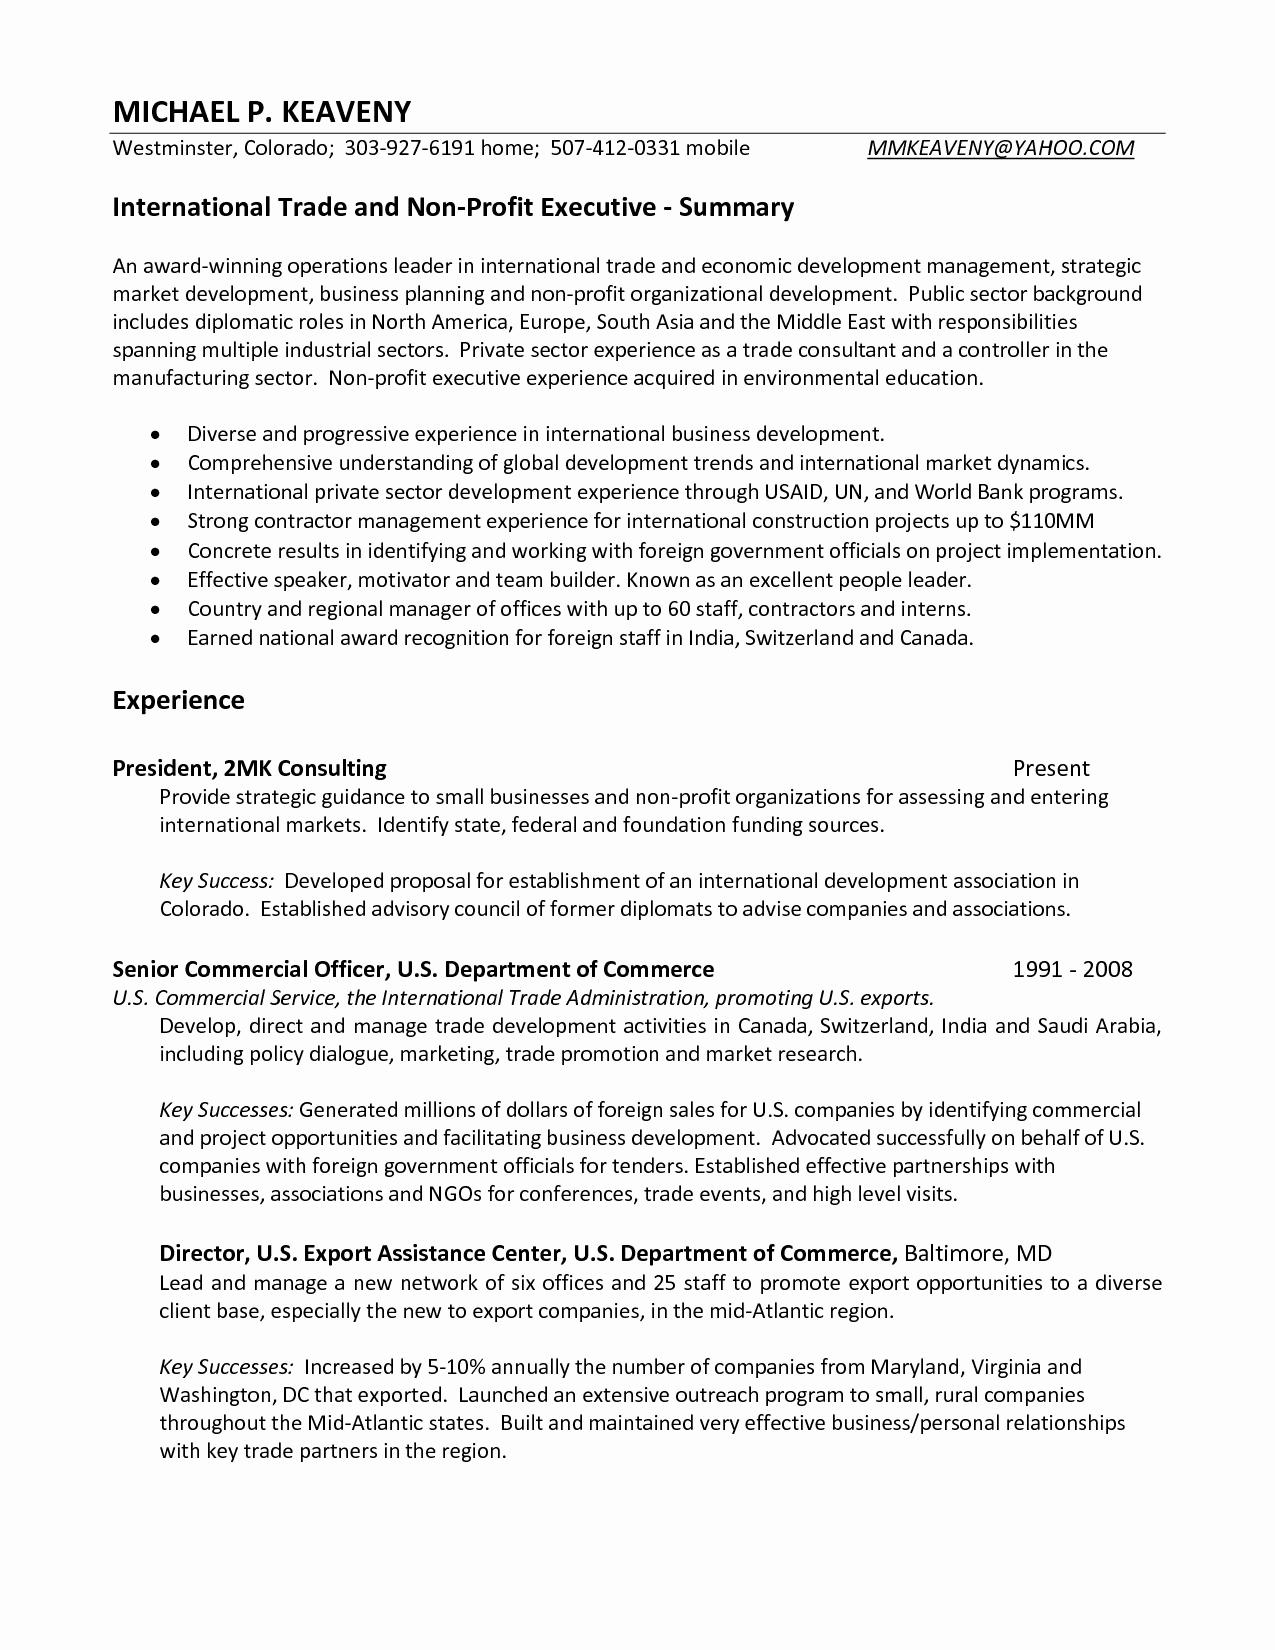 Event Resume Template - Business Resume Examples Fresh Resume or Cv Unique American Resume